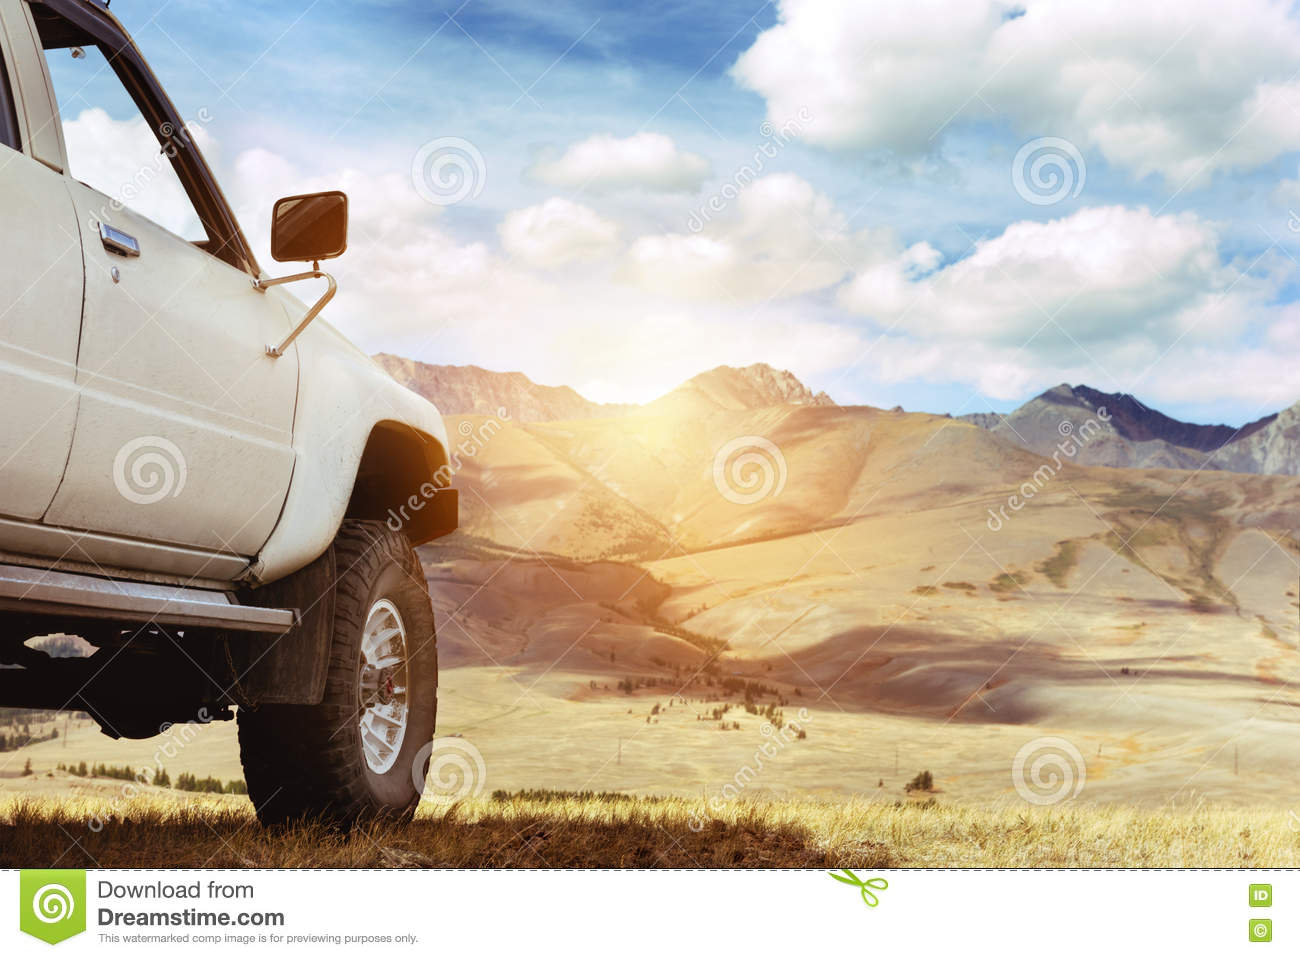 Offroad car jeep mountains 4x4